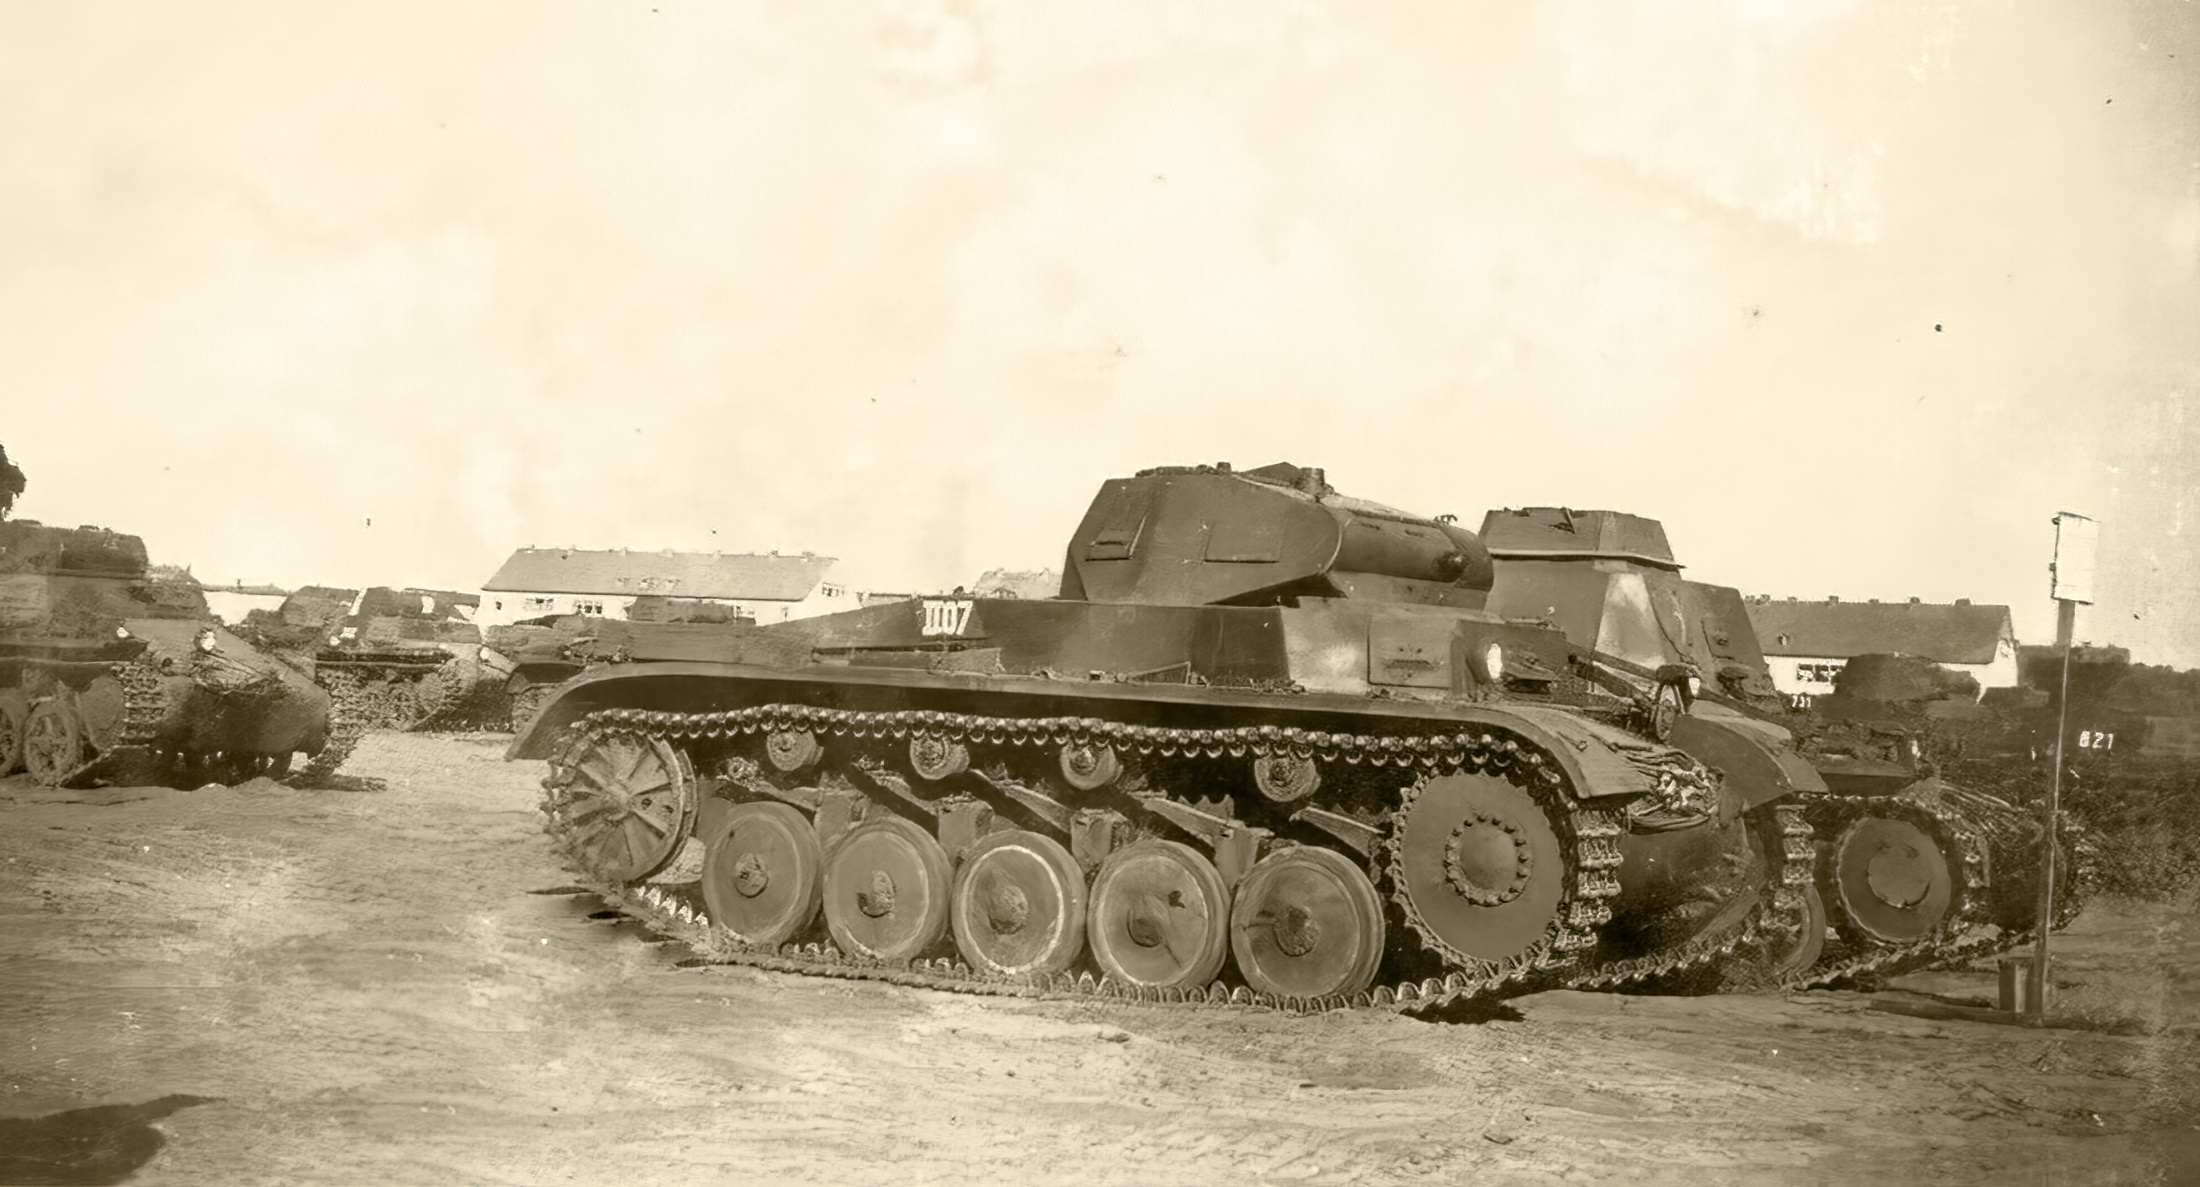 Wehrmacht Panzer II at a tank depo France July 1940 ebay 01